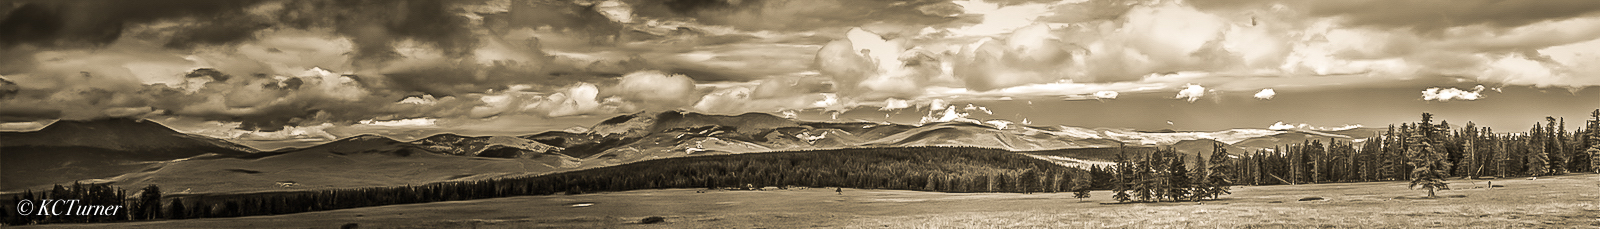 Panoramic, mesa, landscapes, Rio Grande National Forest, storm, high altitude vistas, fine art, photos, photo